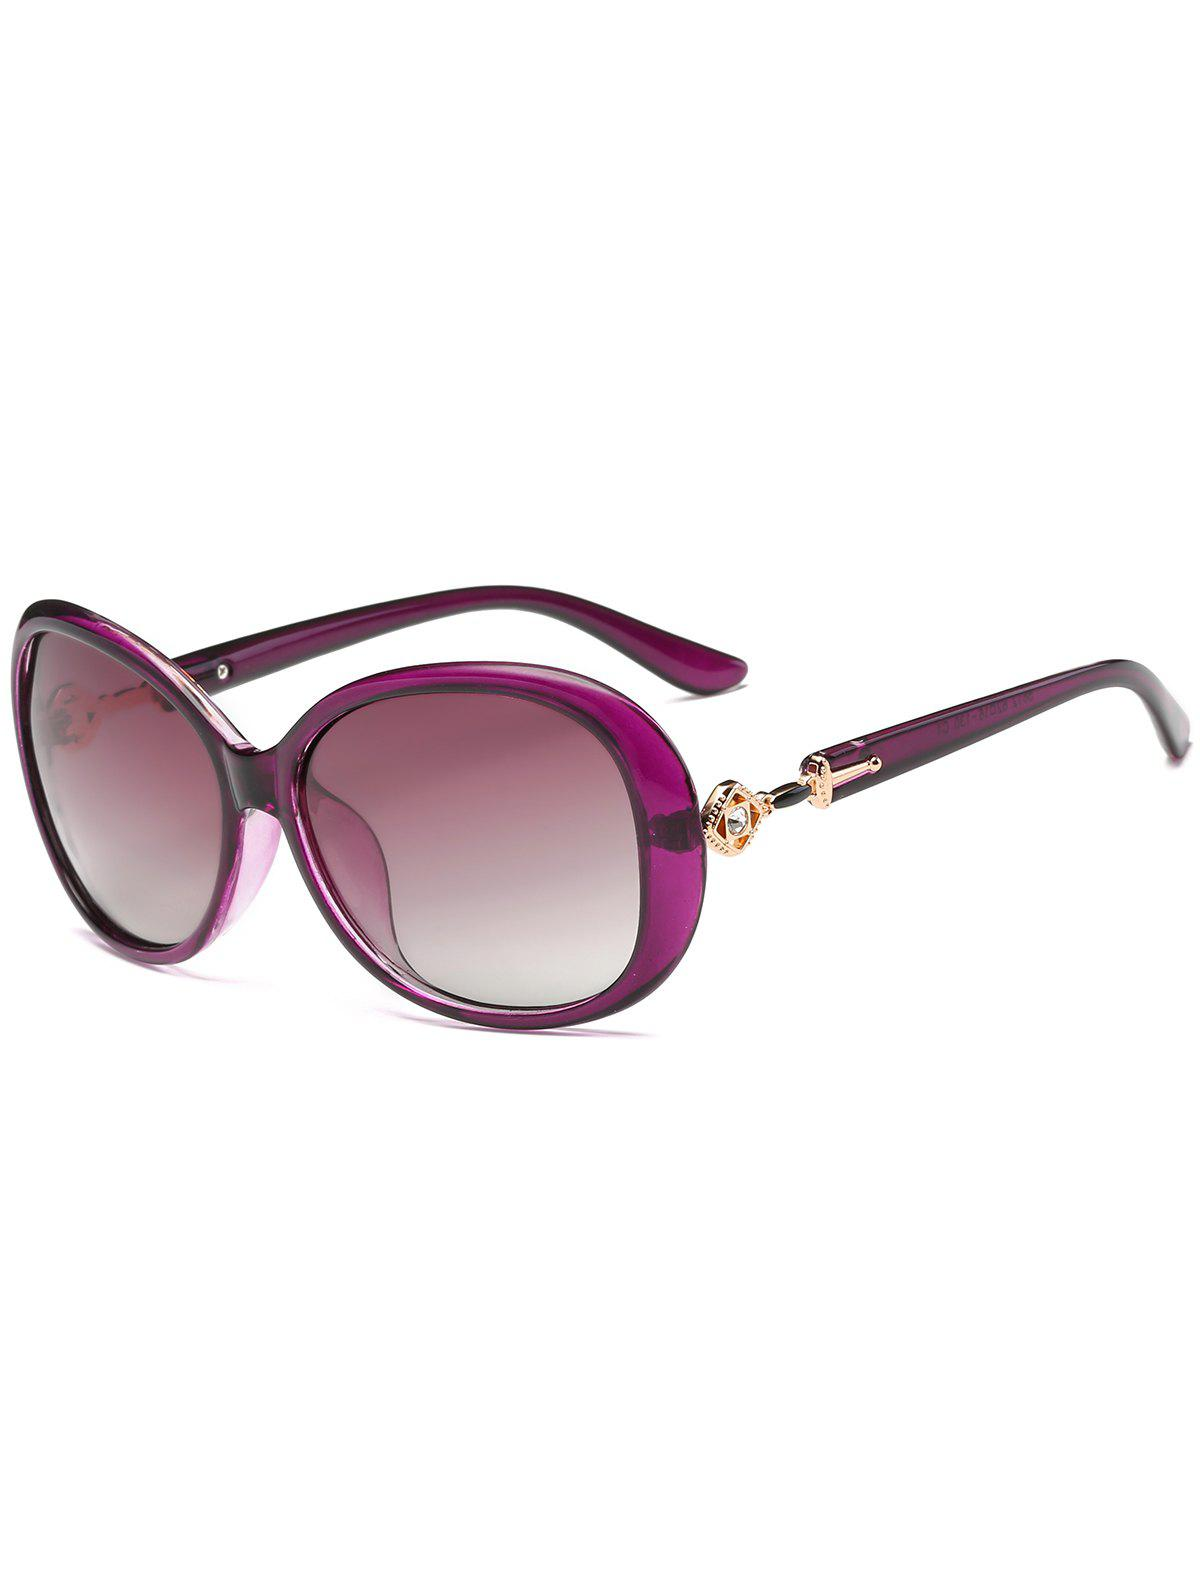 Rhinestone Inlay Decorated Oversized Driver Sunglasses - PURPLE